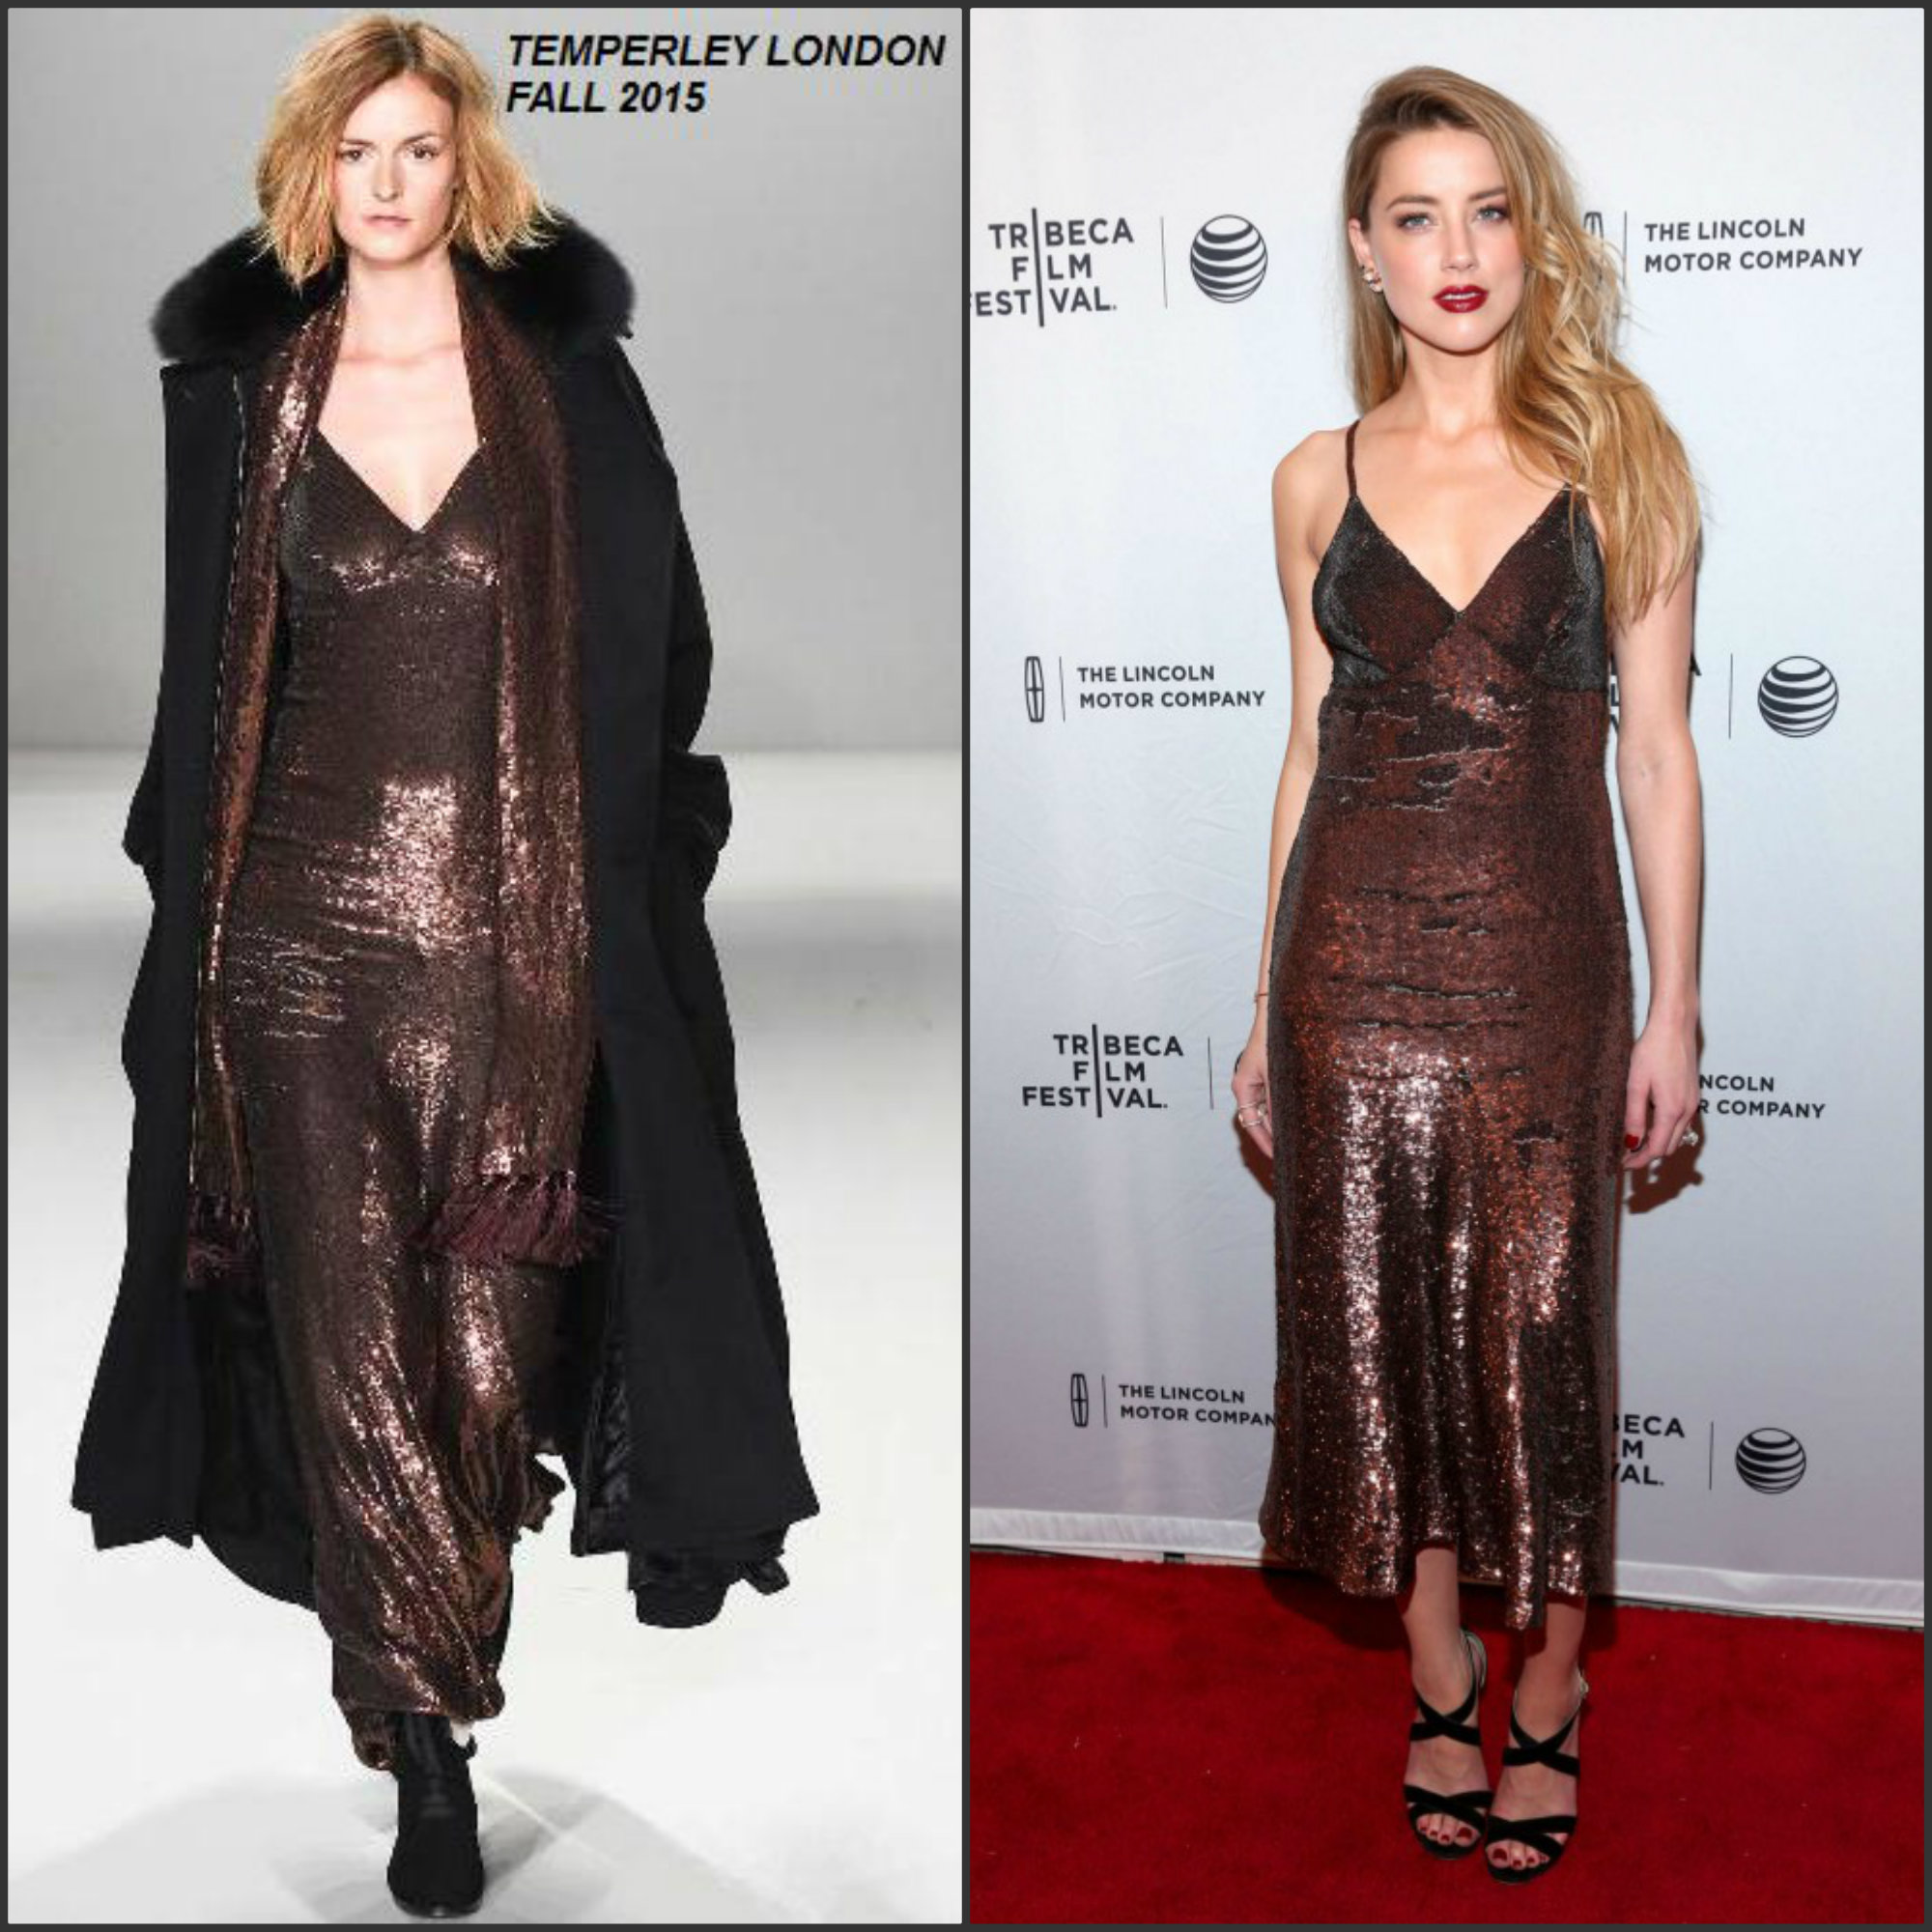 Amber-Heard-in-Temperley-London-at-the- When-I-Live-My-Life-Over-Again-Premiere-Tribeca-Film-Festival